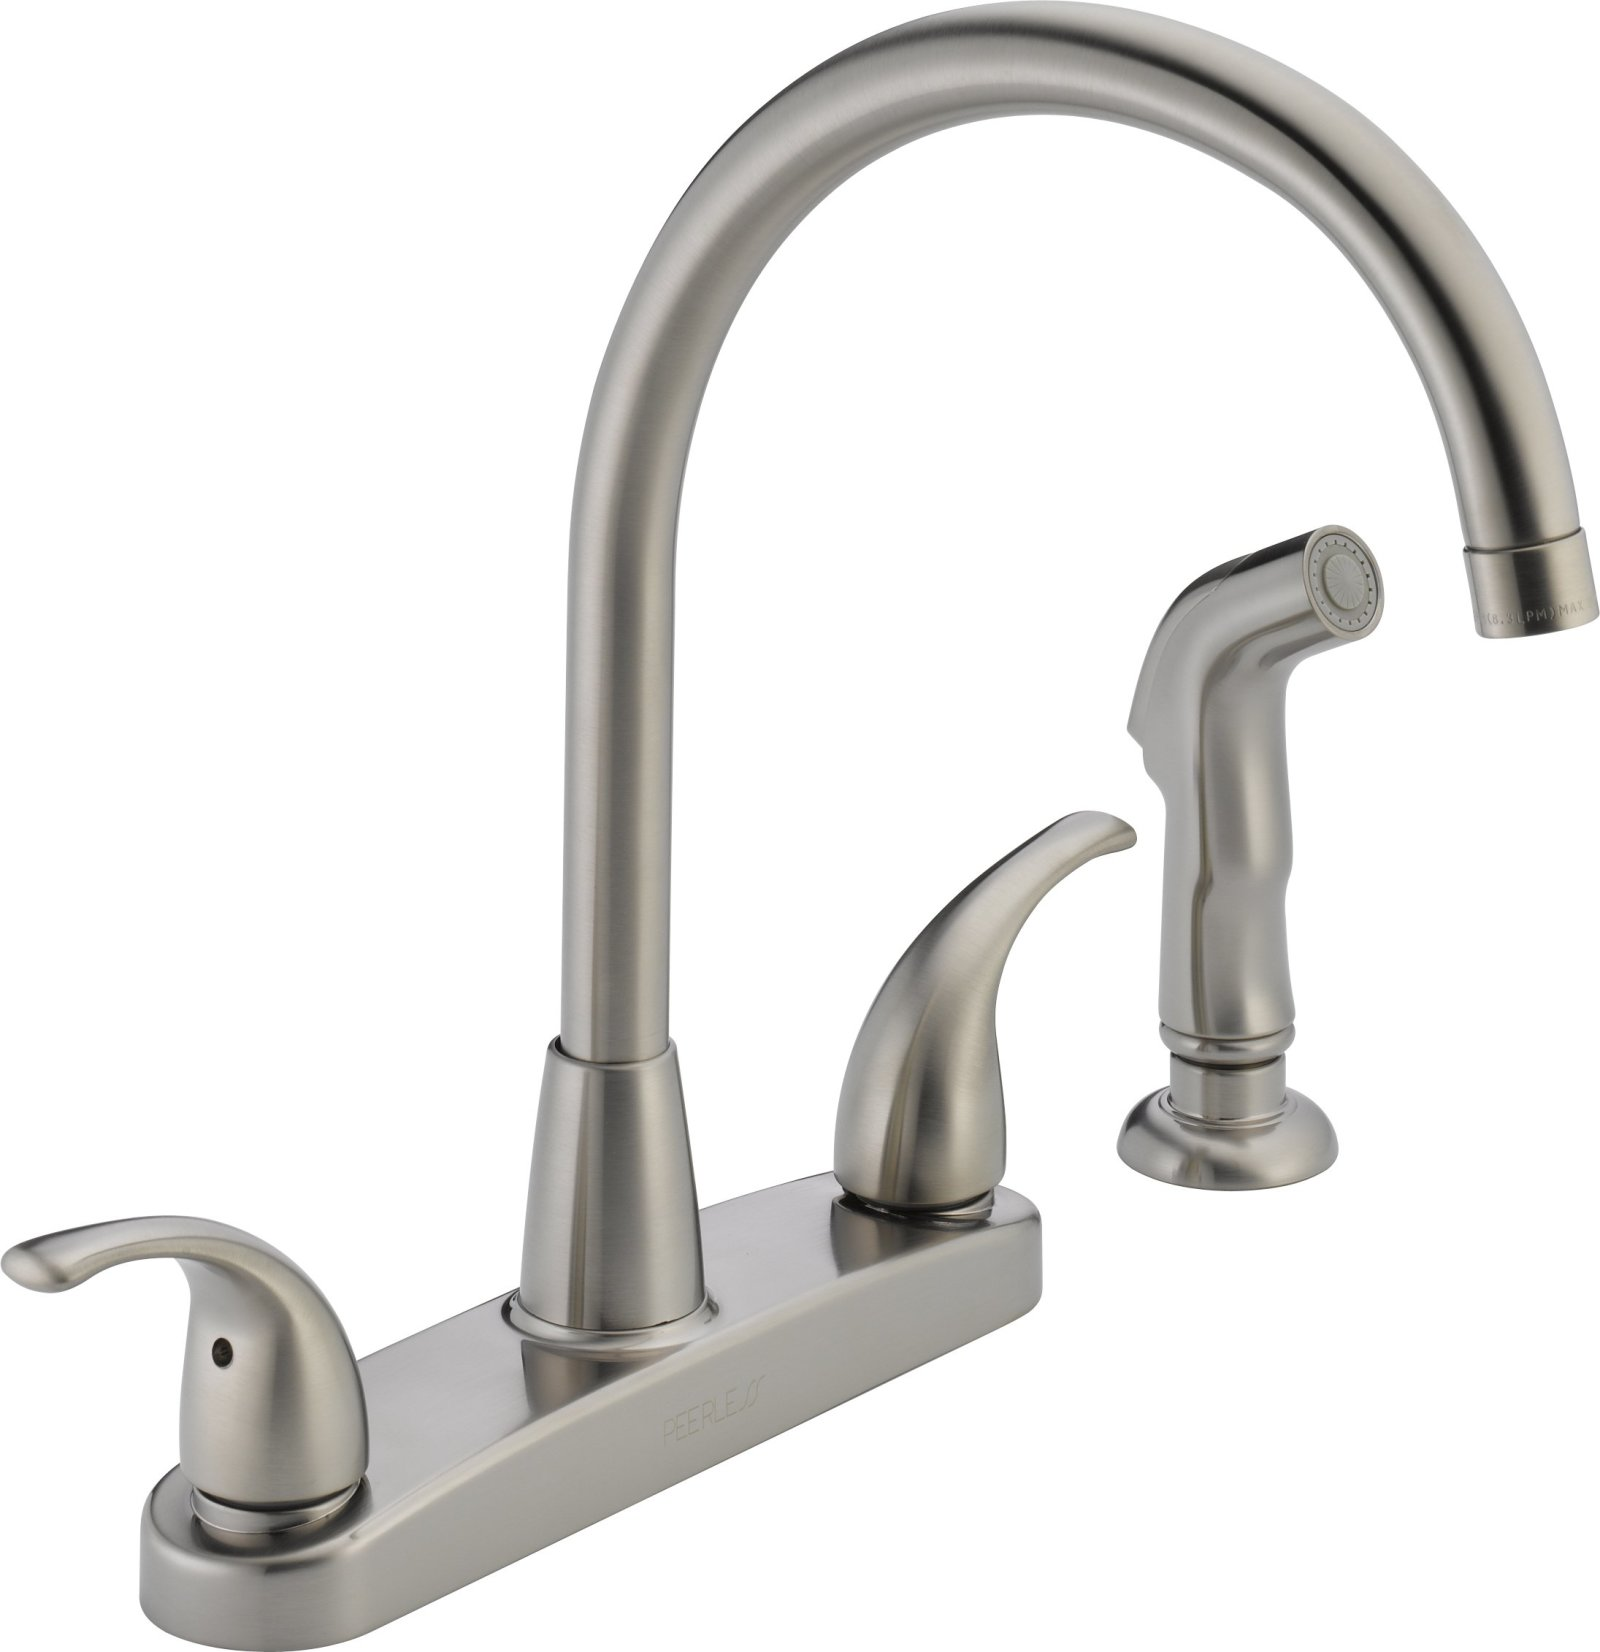 Kitchen sink faucet w side sprayer brushed nickel two handles high arc 4 holes